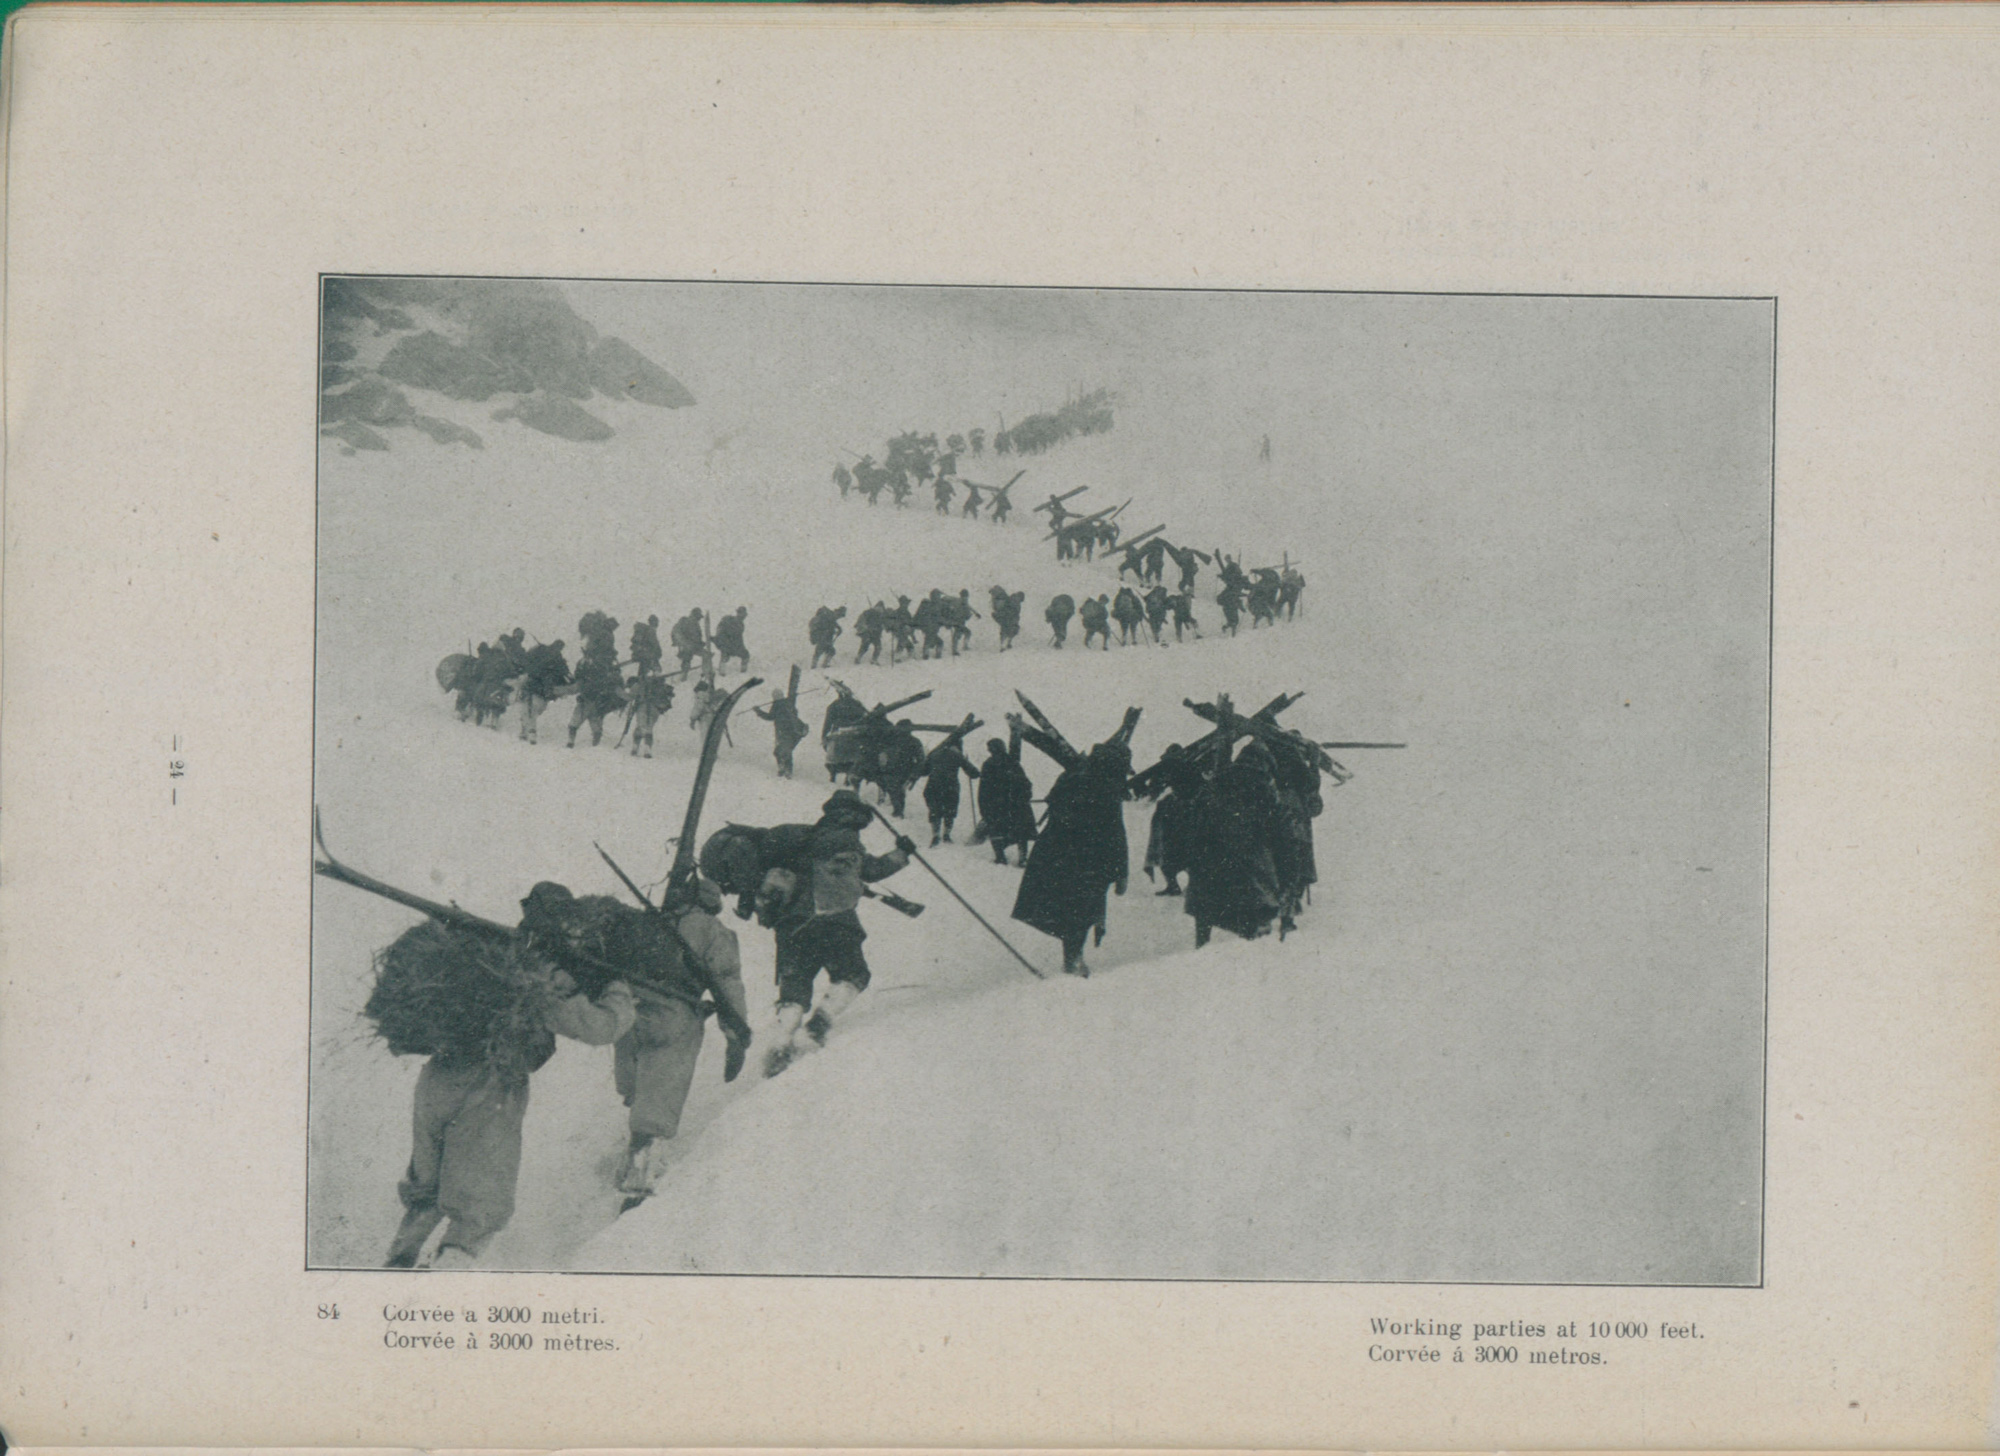 Photograph, 1916, showing members of the Italian alpine troops climbing at 3000 metres, equipped with skis and sealskin to aid movement through the snow.